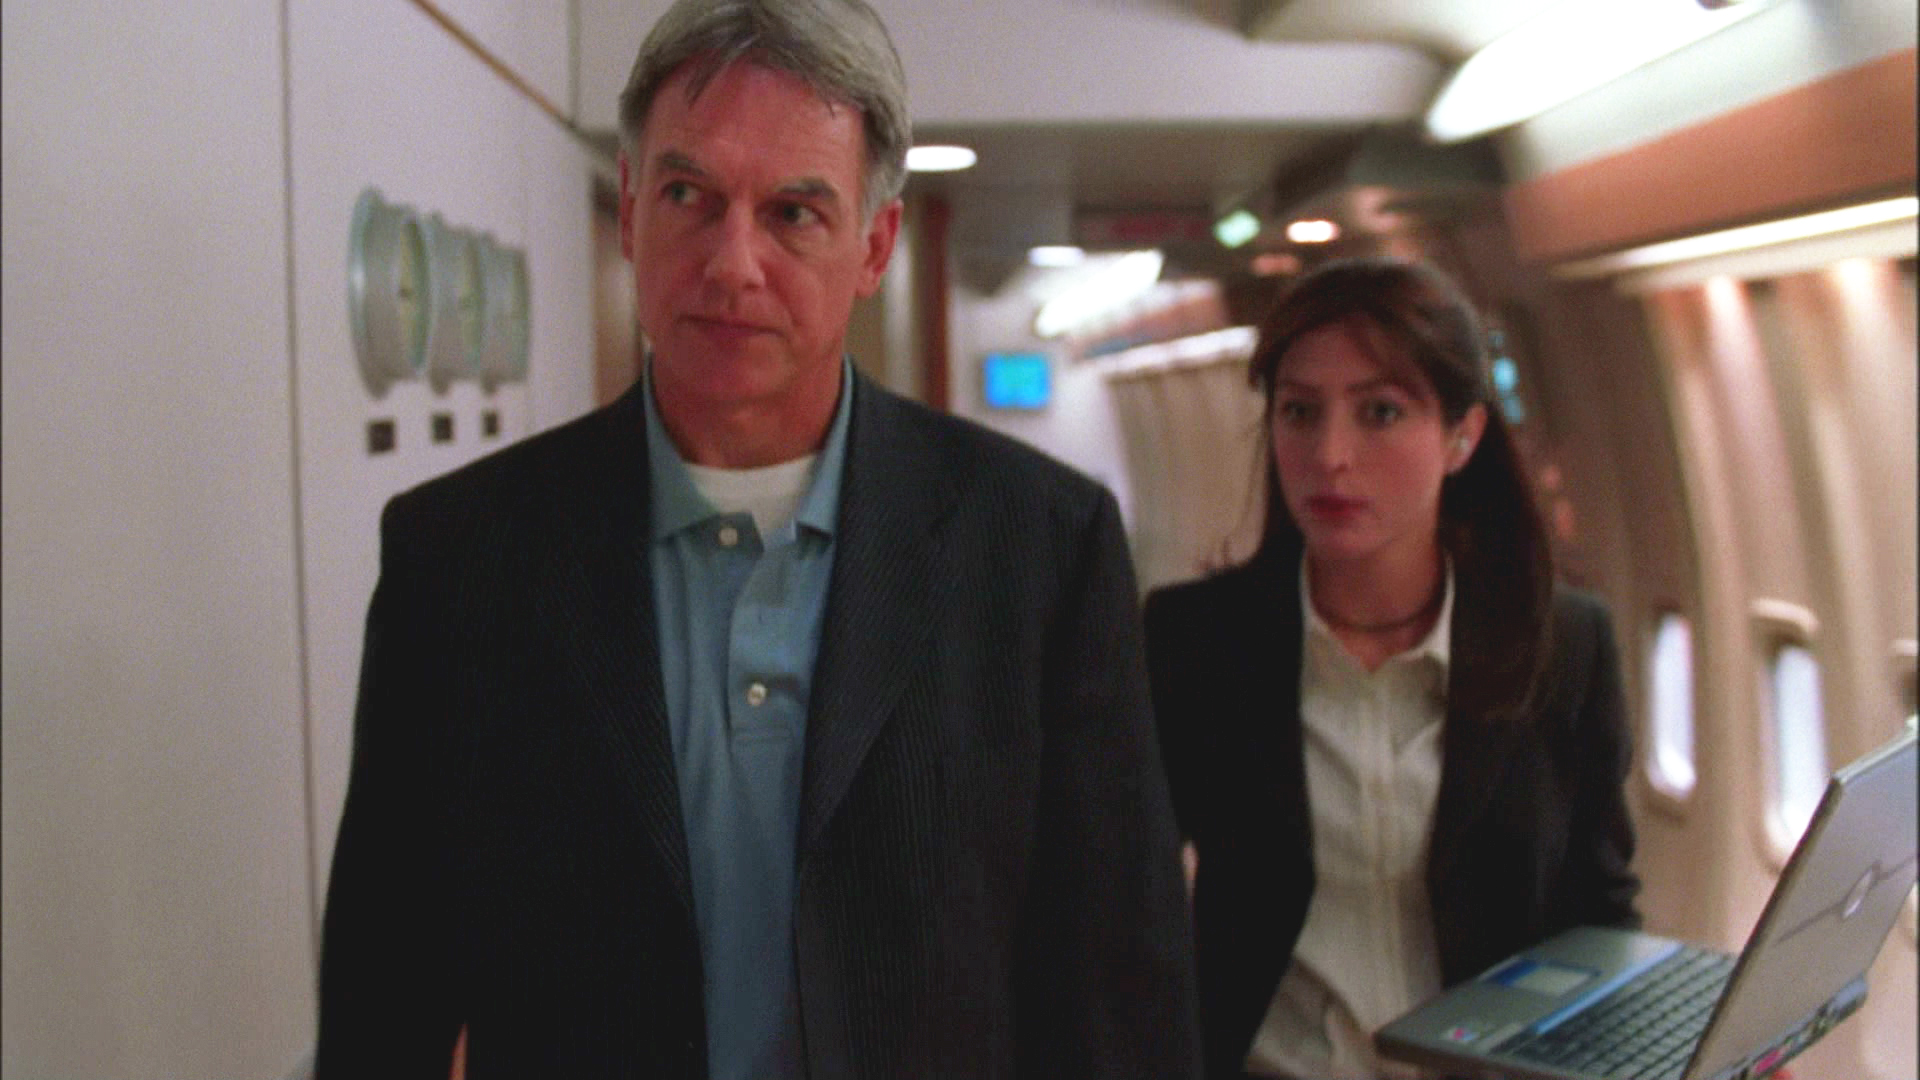 Watch NCIS Season 1 Episode 1: Yankee White - Full show on CBS All Access